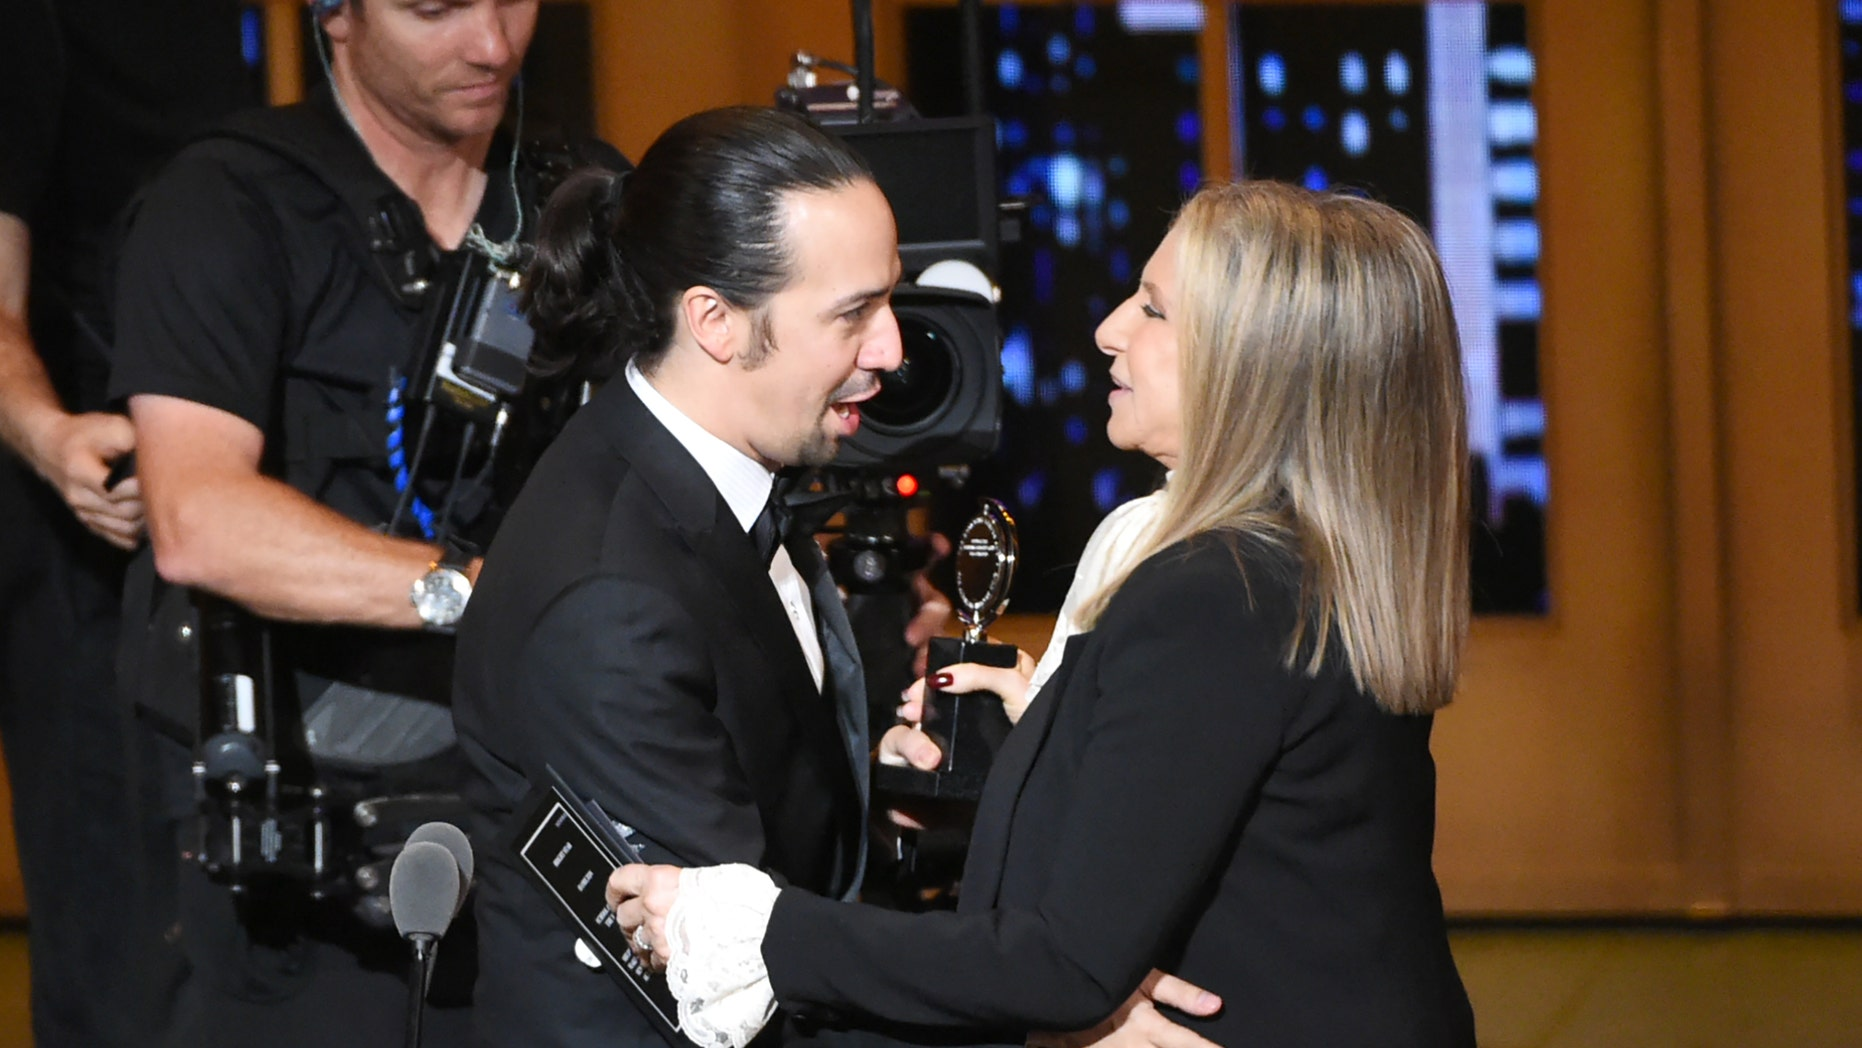 """Barbra Streisand, right,  presents the award for best musical to Lin-Manuel Miranda of """"Hamilton"""" at the Tony Awards at the Beacon Theatre on Sunday, June 12, 2016, in New York. (Photo by Evan Agostini/Invision/AP)"""